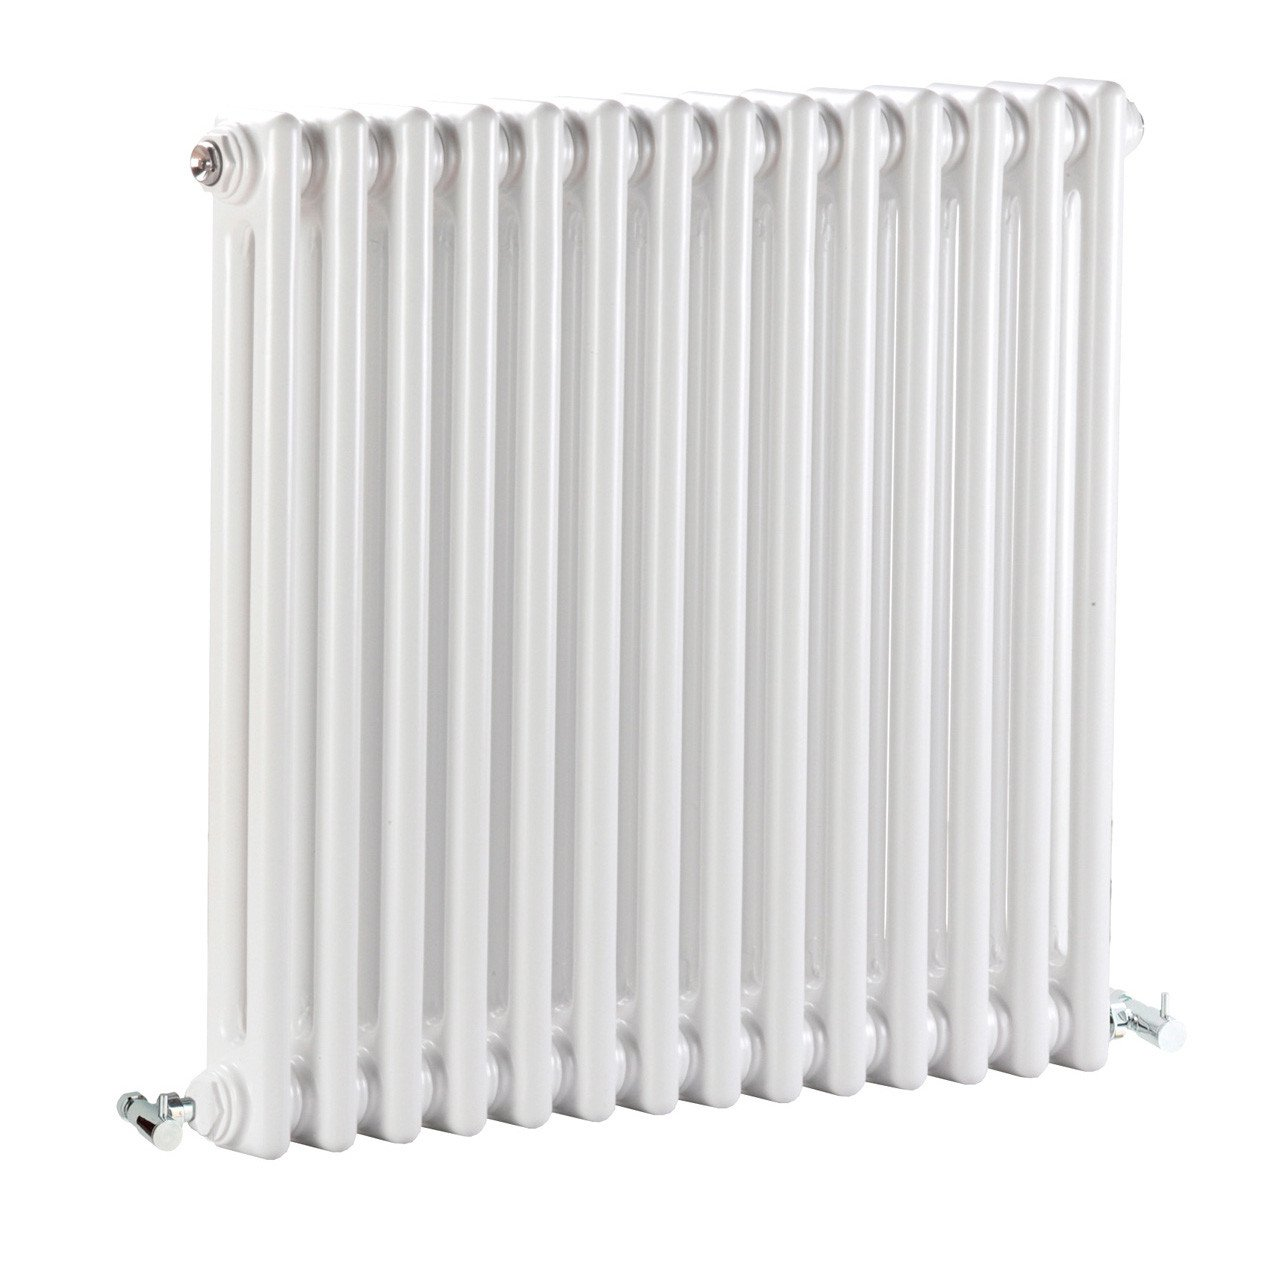 Premier Regency 600mm 2 Column Radiator with 6mm x 14mm Sections - MTY076